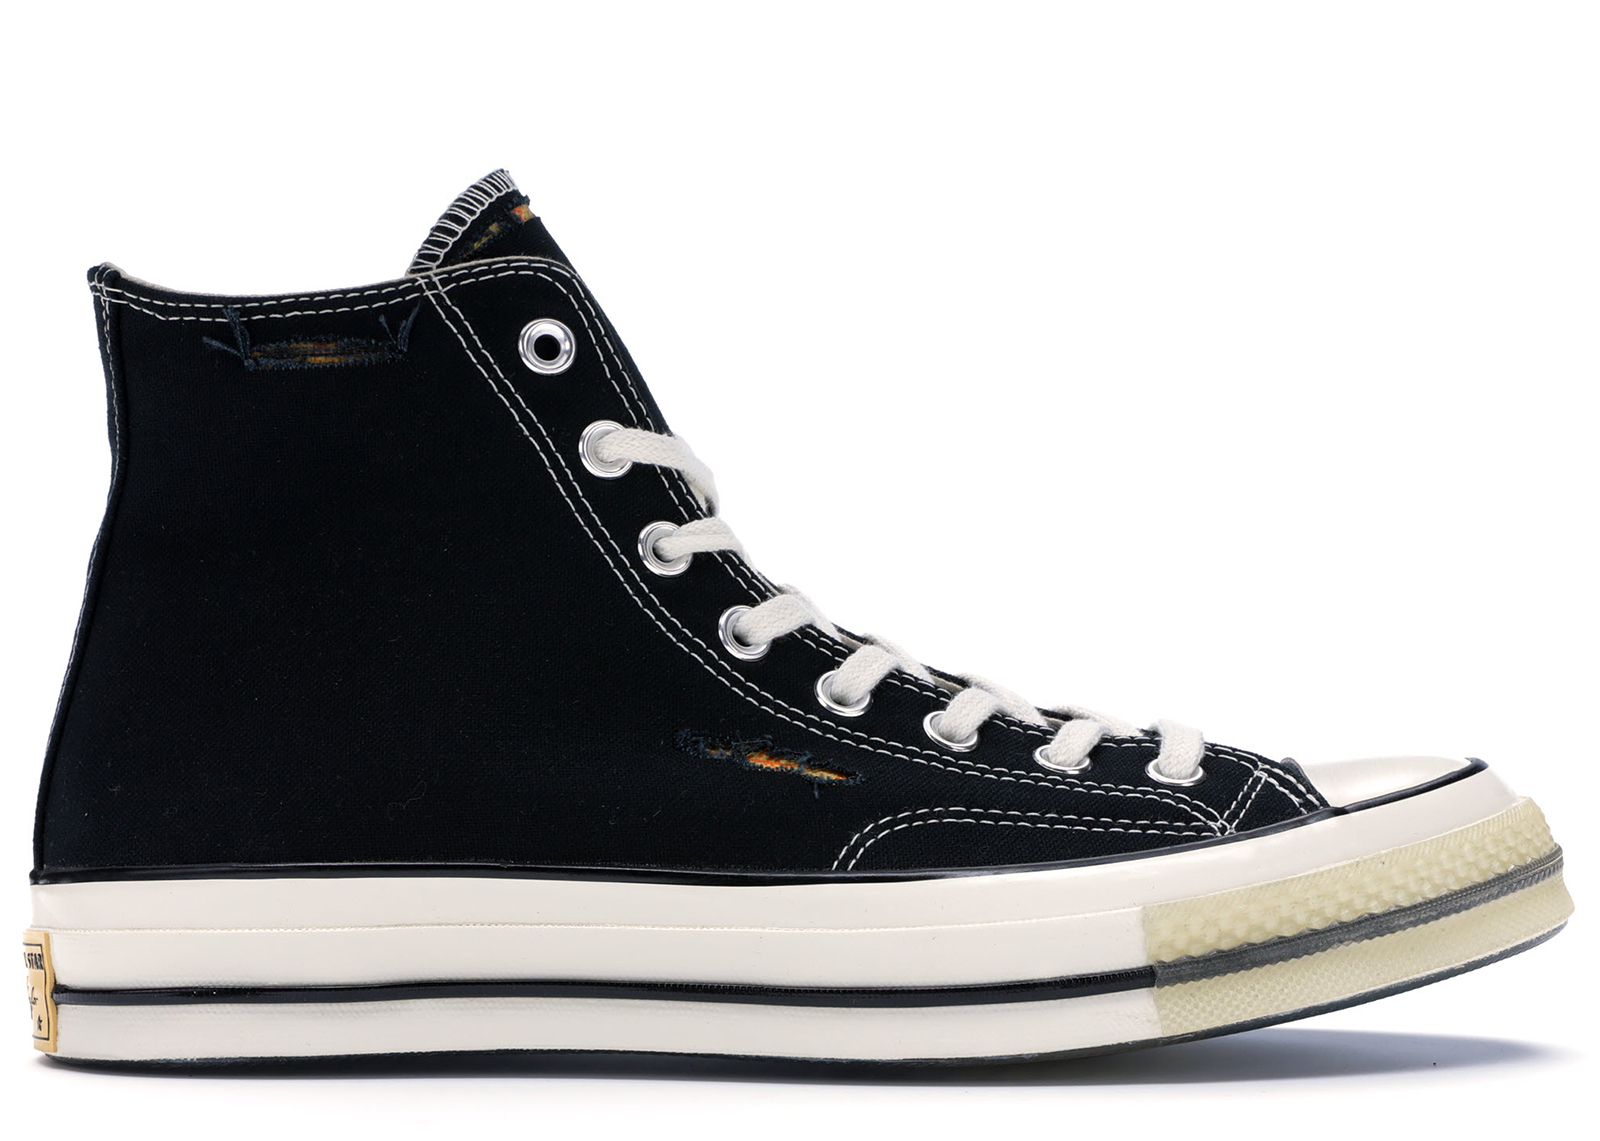 Converse Chuck Taylor All Star 70s Hi Dr. Woo Wear to Reveal Black